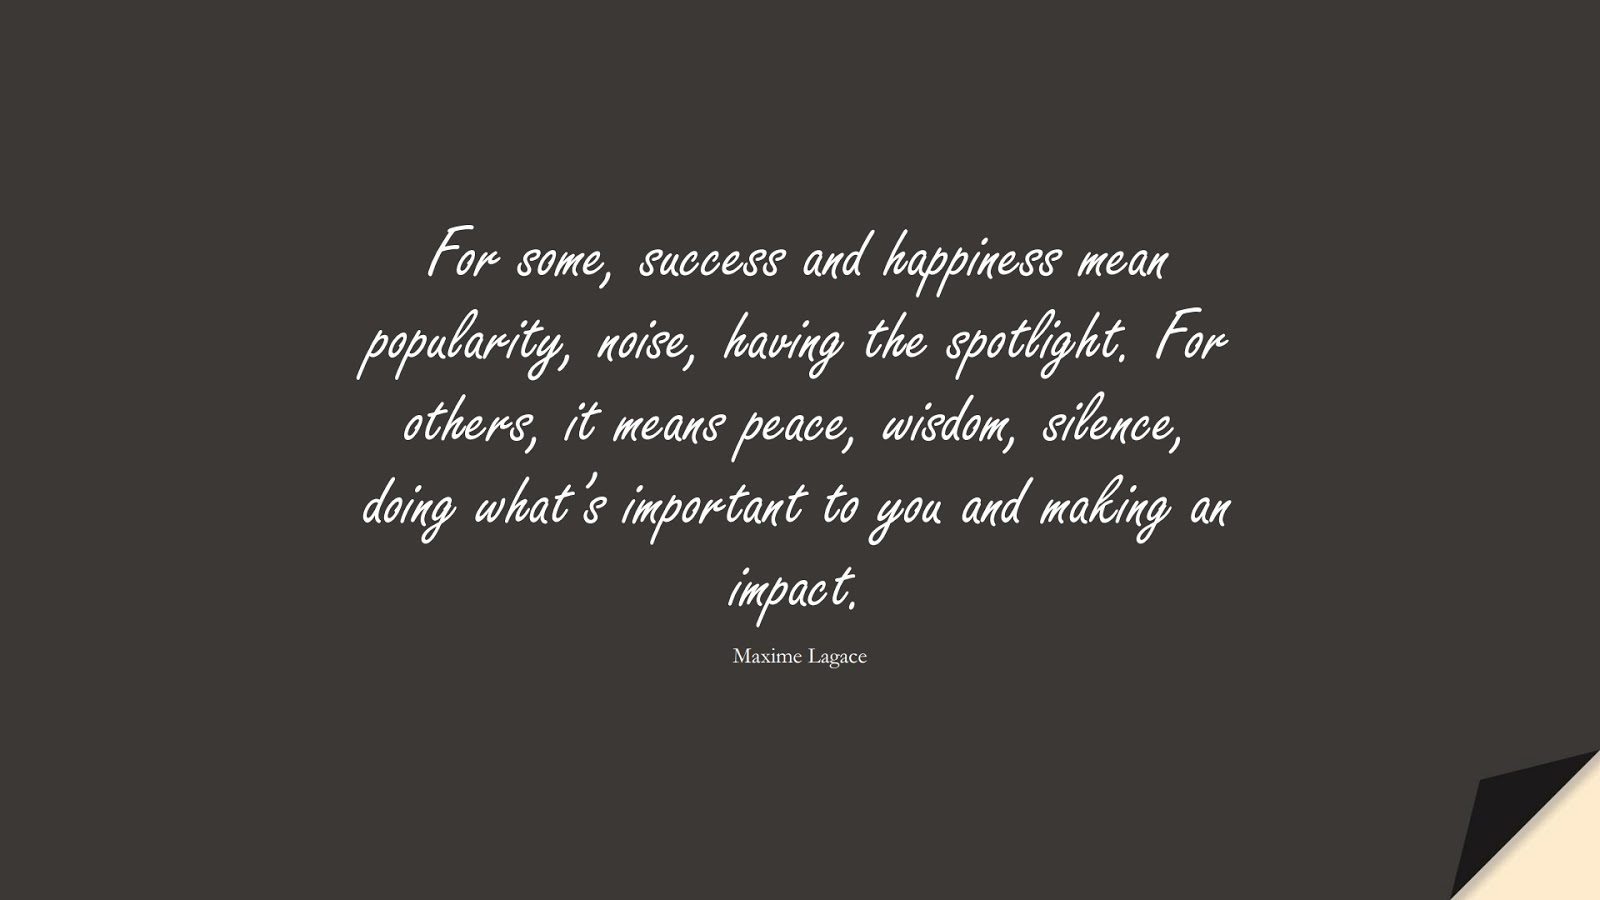 For some, success and happiness mean popularity, noise, having the spotlight. For others, it means peace, wisdom, silence, doing what's important to you and making an impact. (Maxime Lagace);  #SuccessQuotes